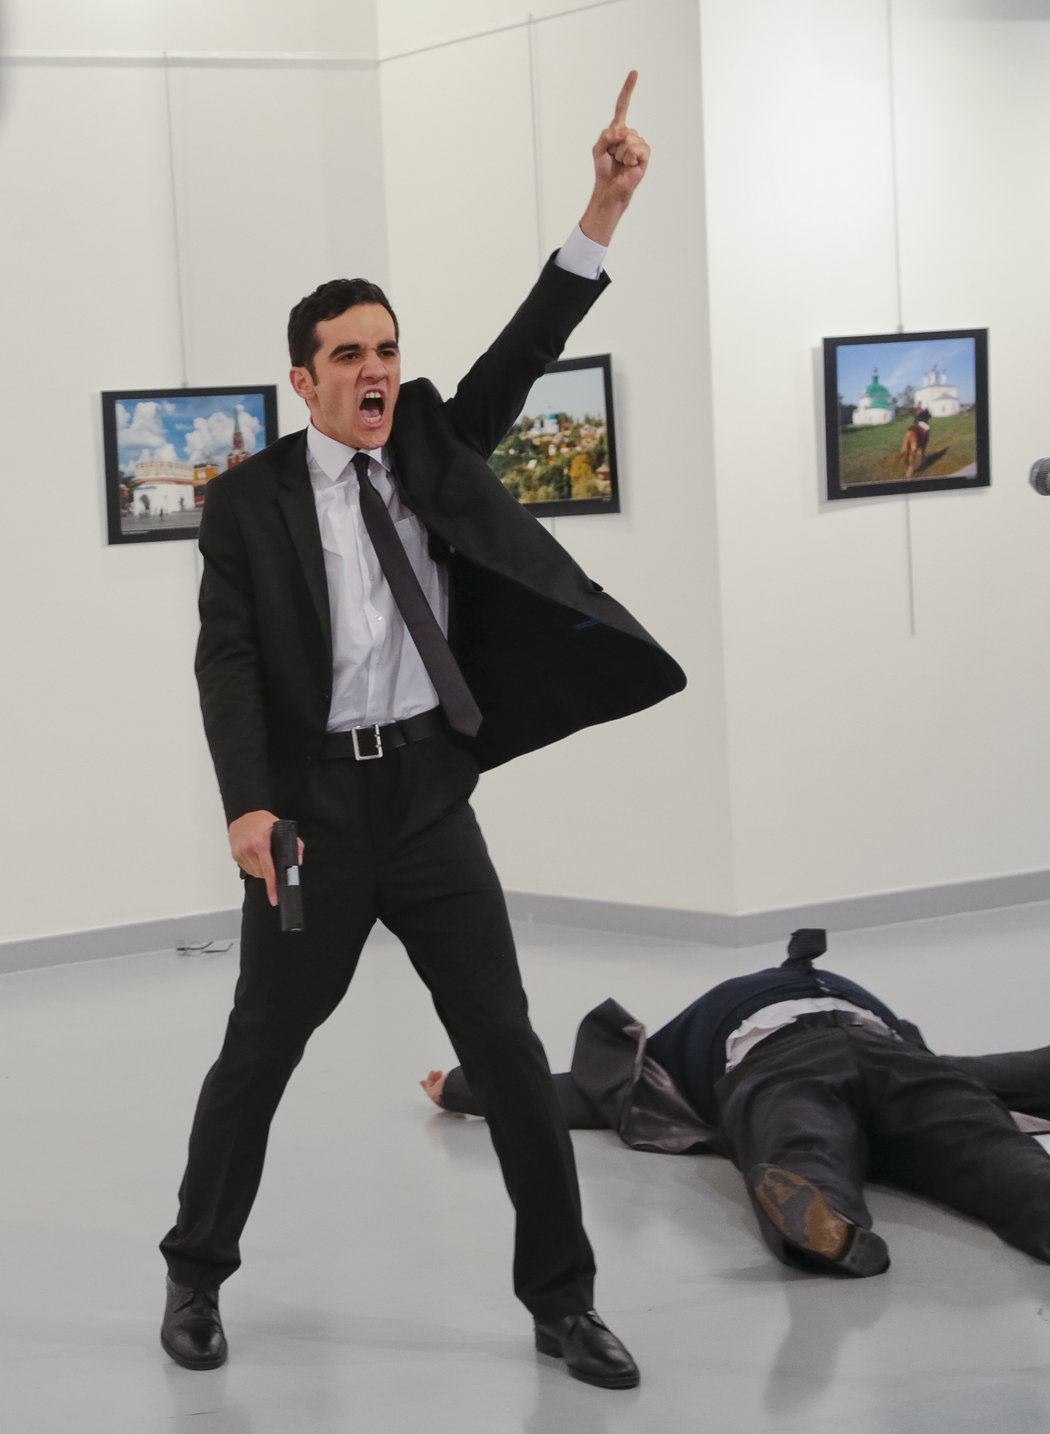 The assassination of the Russian ambassador to Turkey. Copyrighted Image. For informational use only. http://www.nytimes.com/interactive/2016/12/22/sunday-review/2016-year-in-pictures.html?_r=2